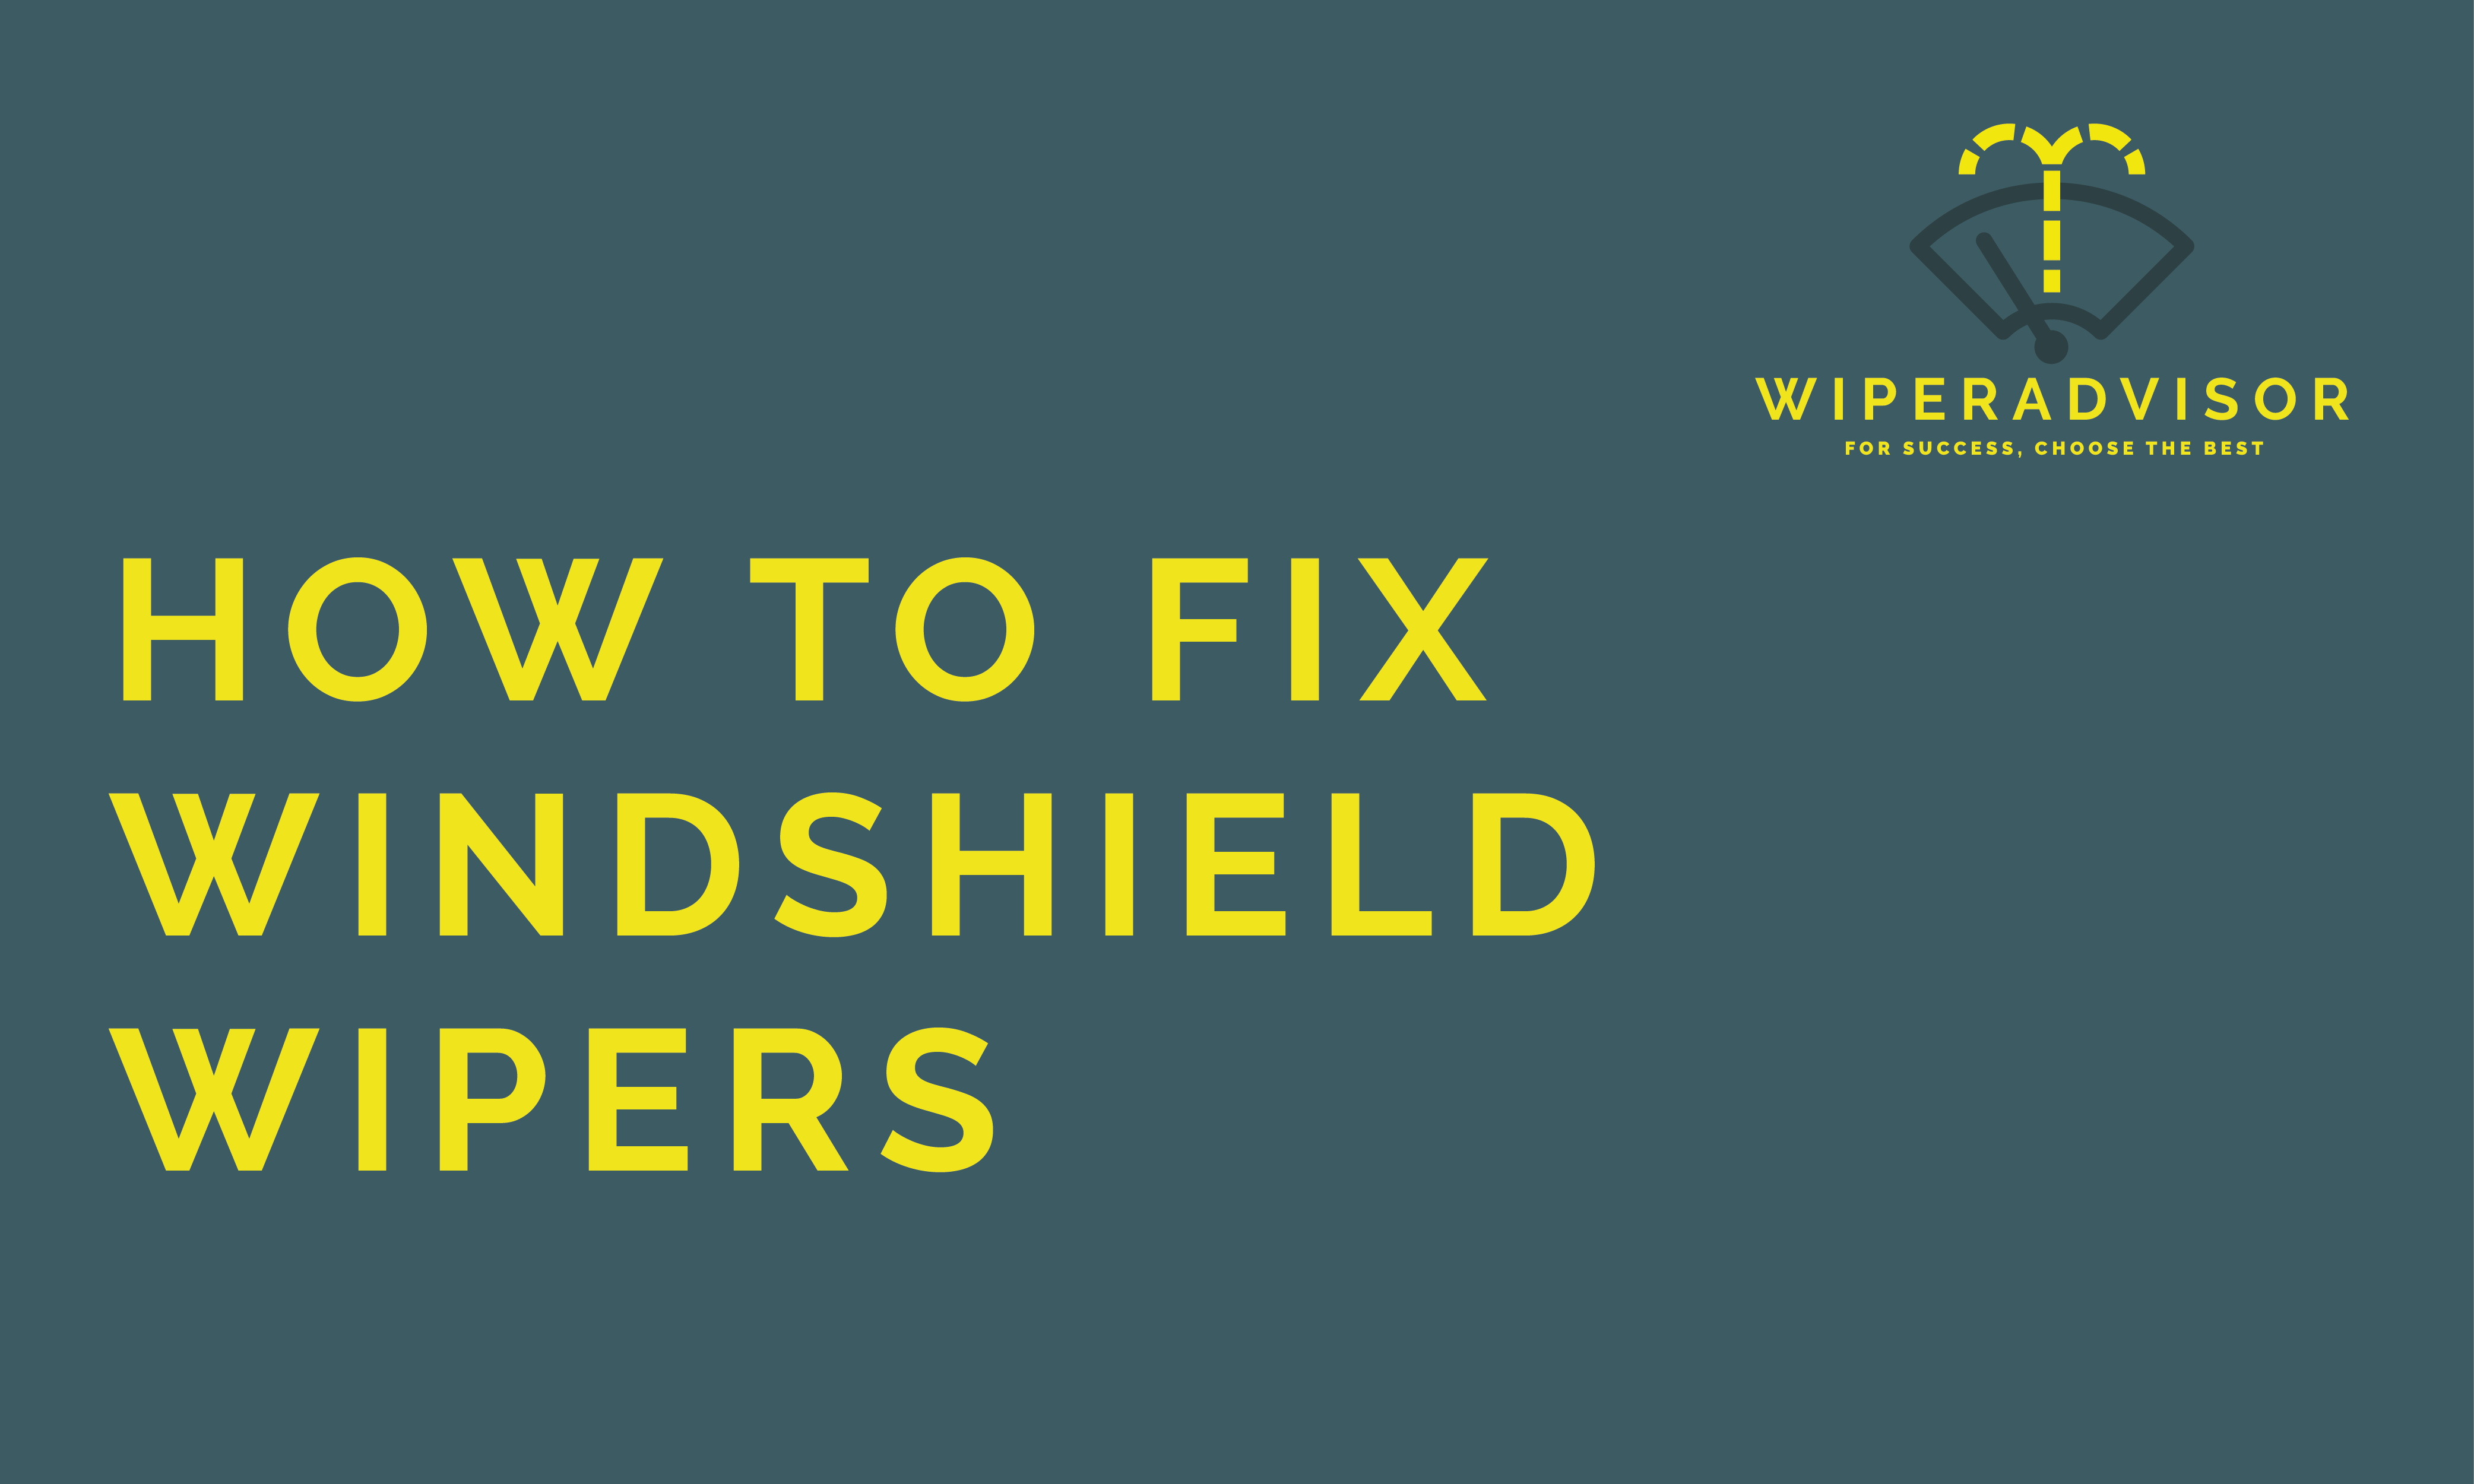 How to fix windshield wipers